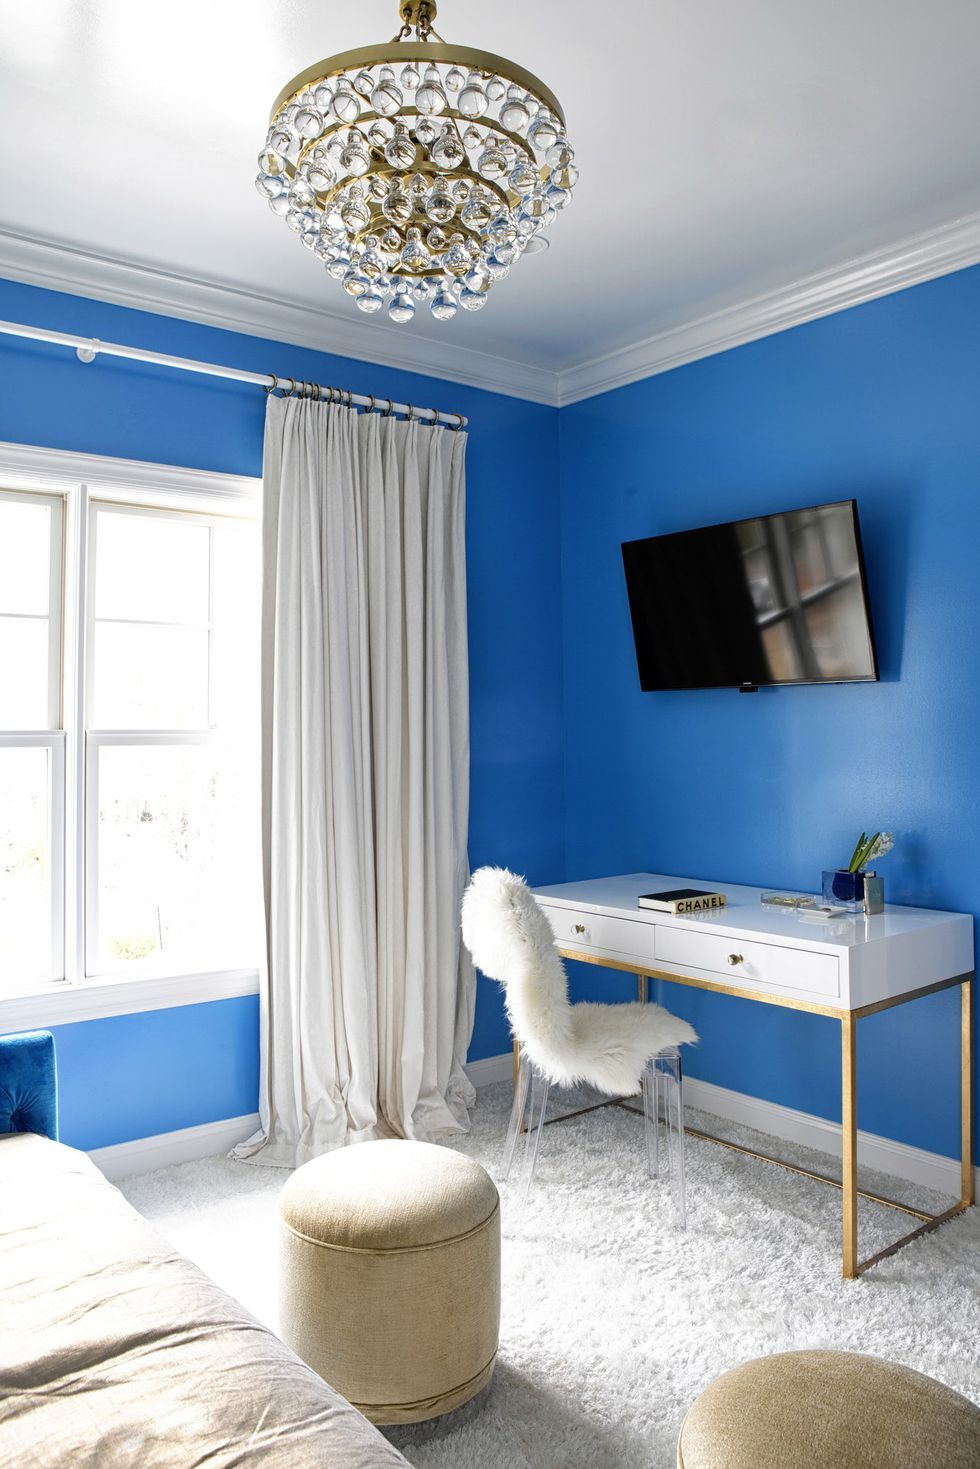 These Gorgeous Rooms Will Tempt You To Experiment With Color Bright Living Room Room Color Design Colorful Bedroom Design